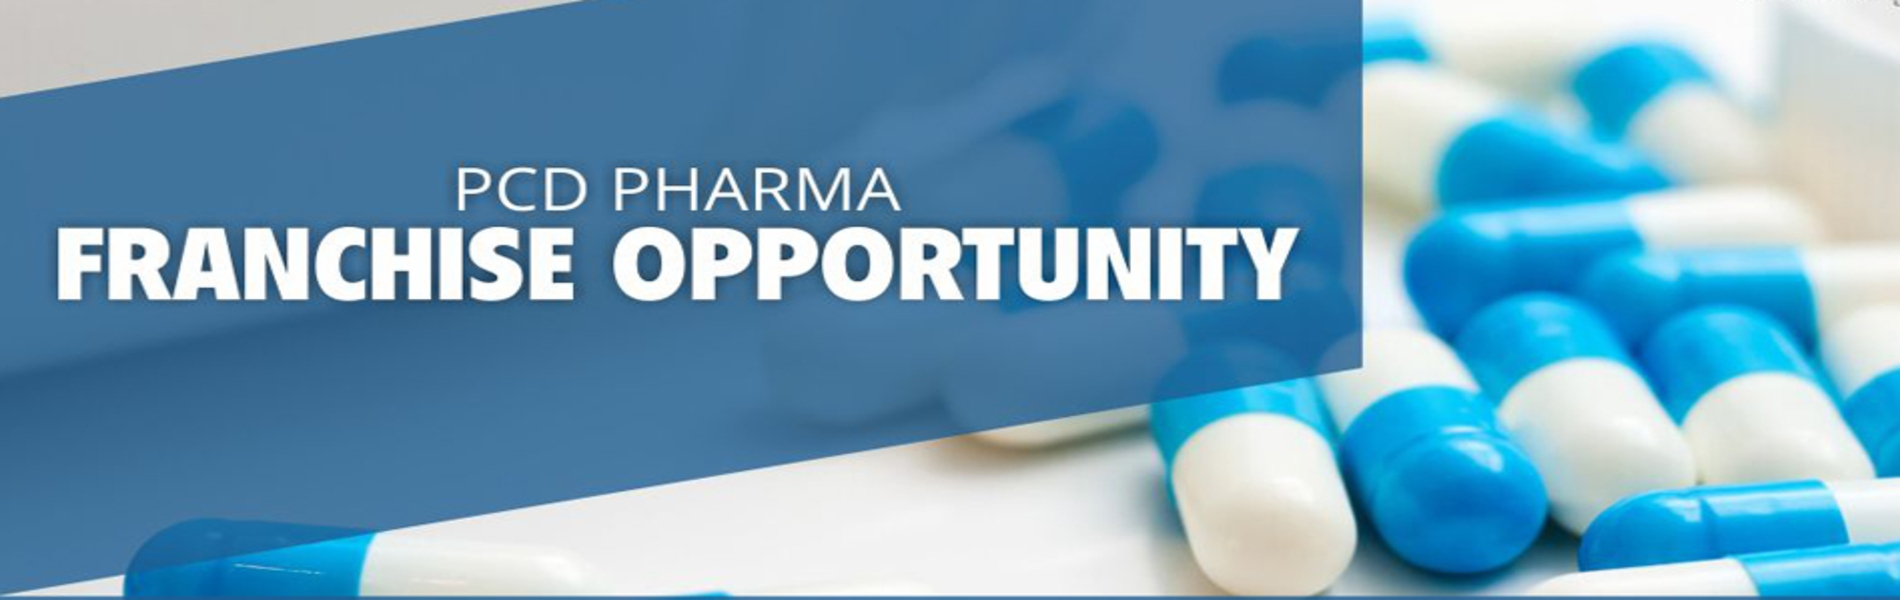 Derma Company in Ahmedabad (@dermapharmafranchise) Cover Image